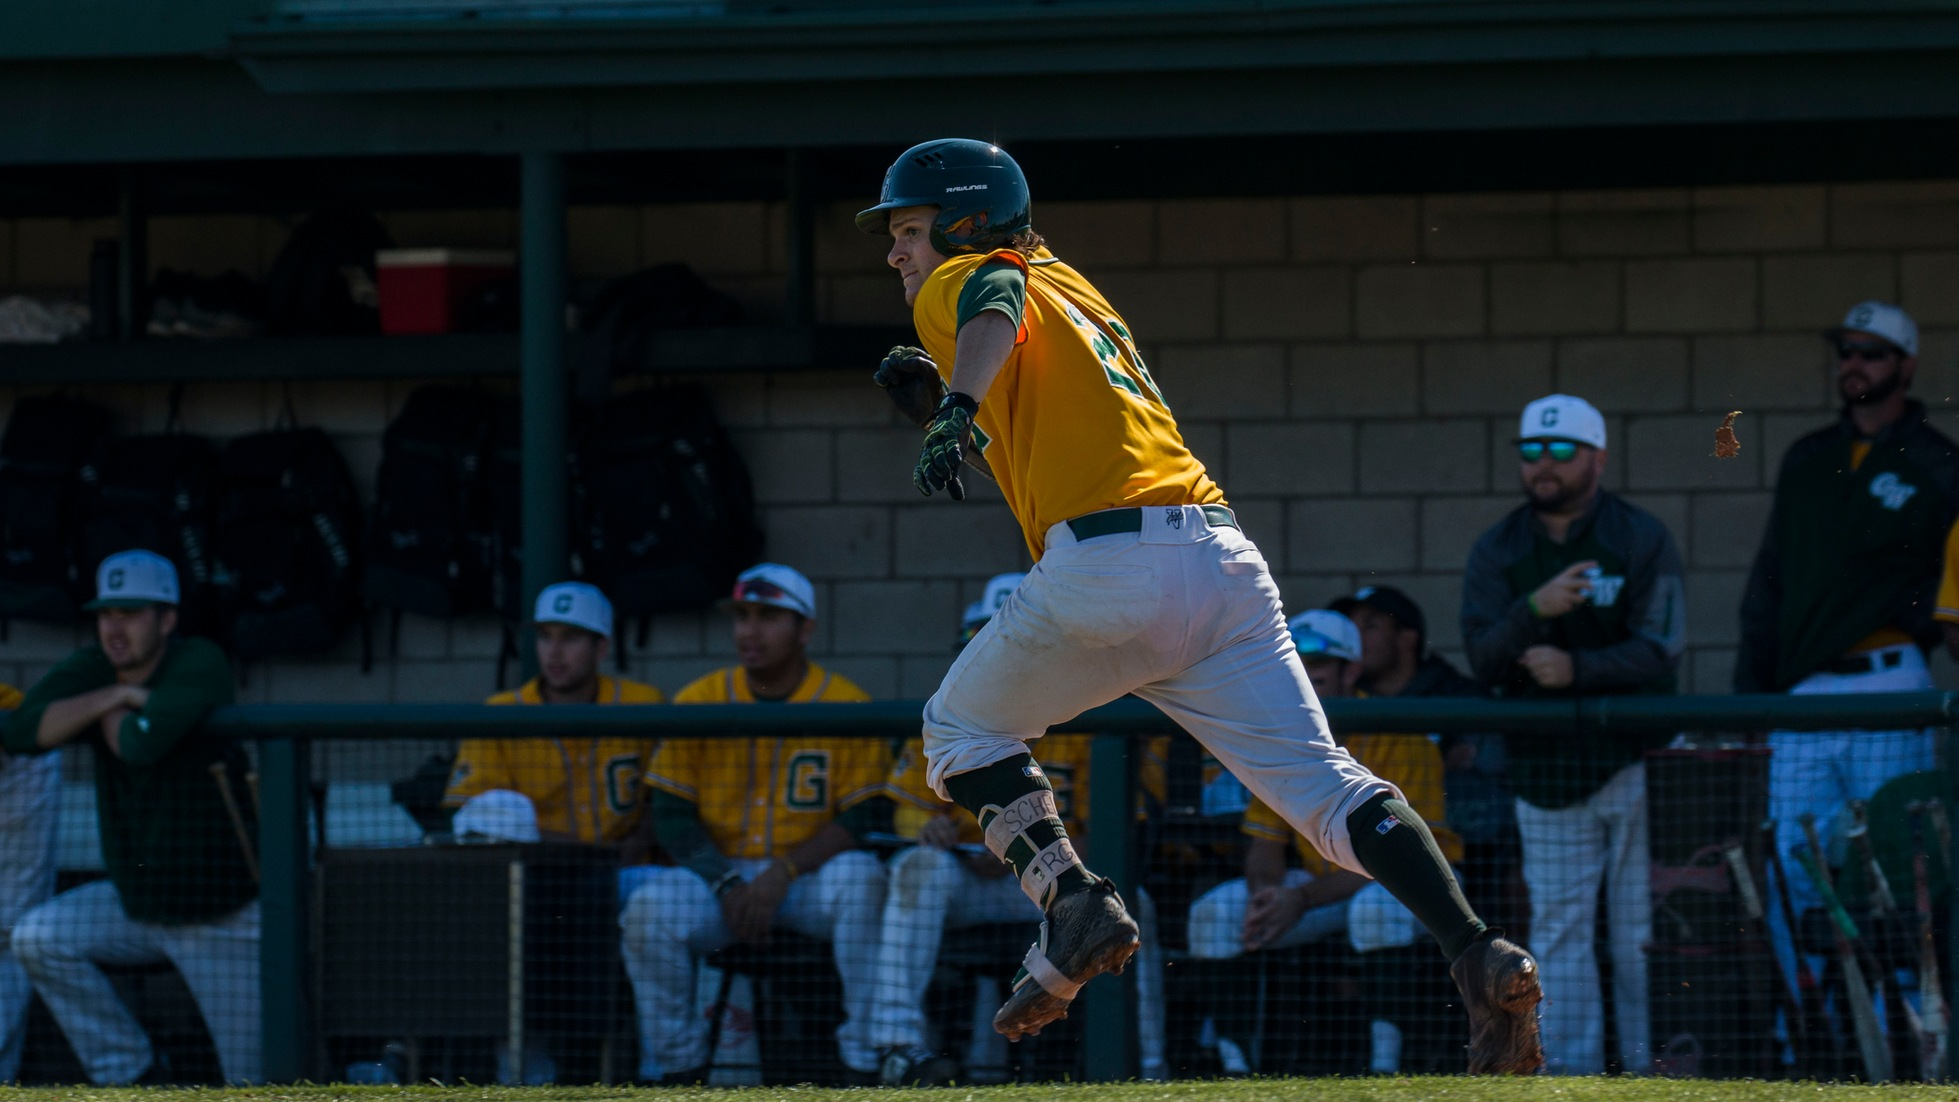 Baseball: Bushell's Spark Not Enough as Rustlers Fall